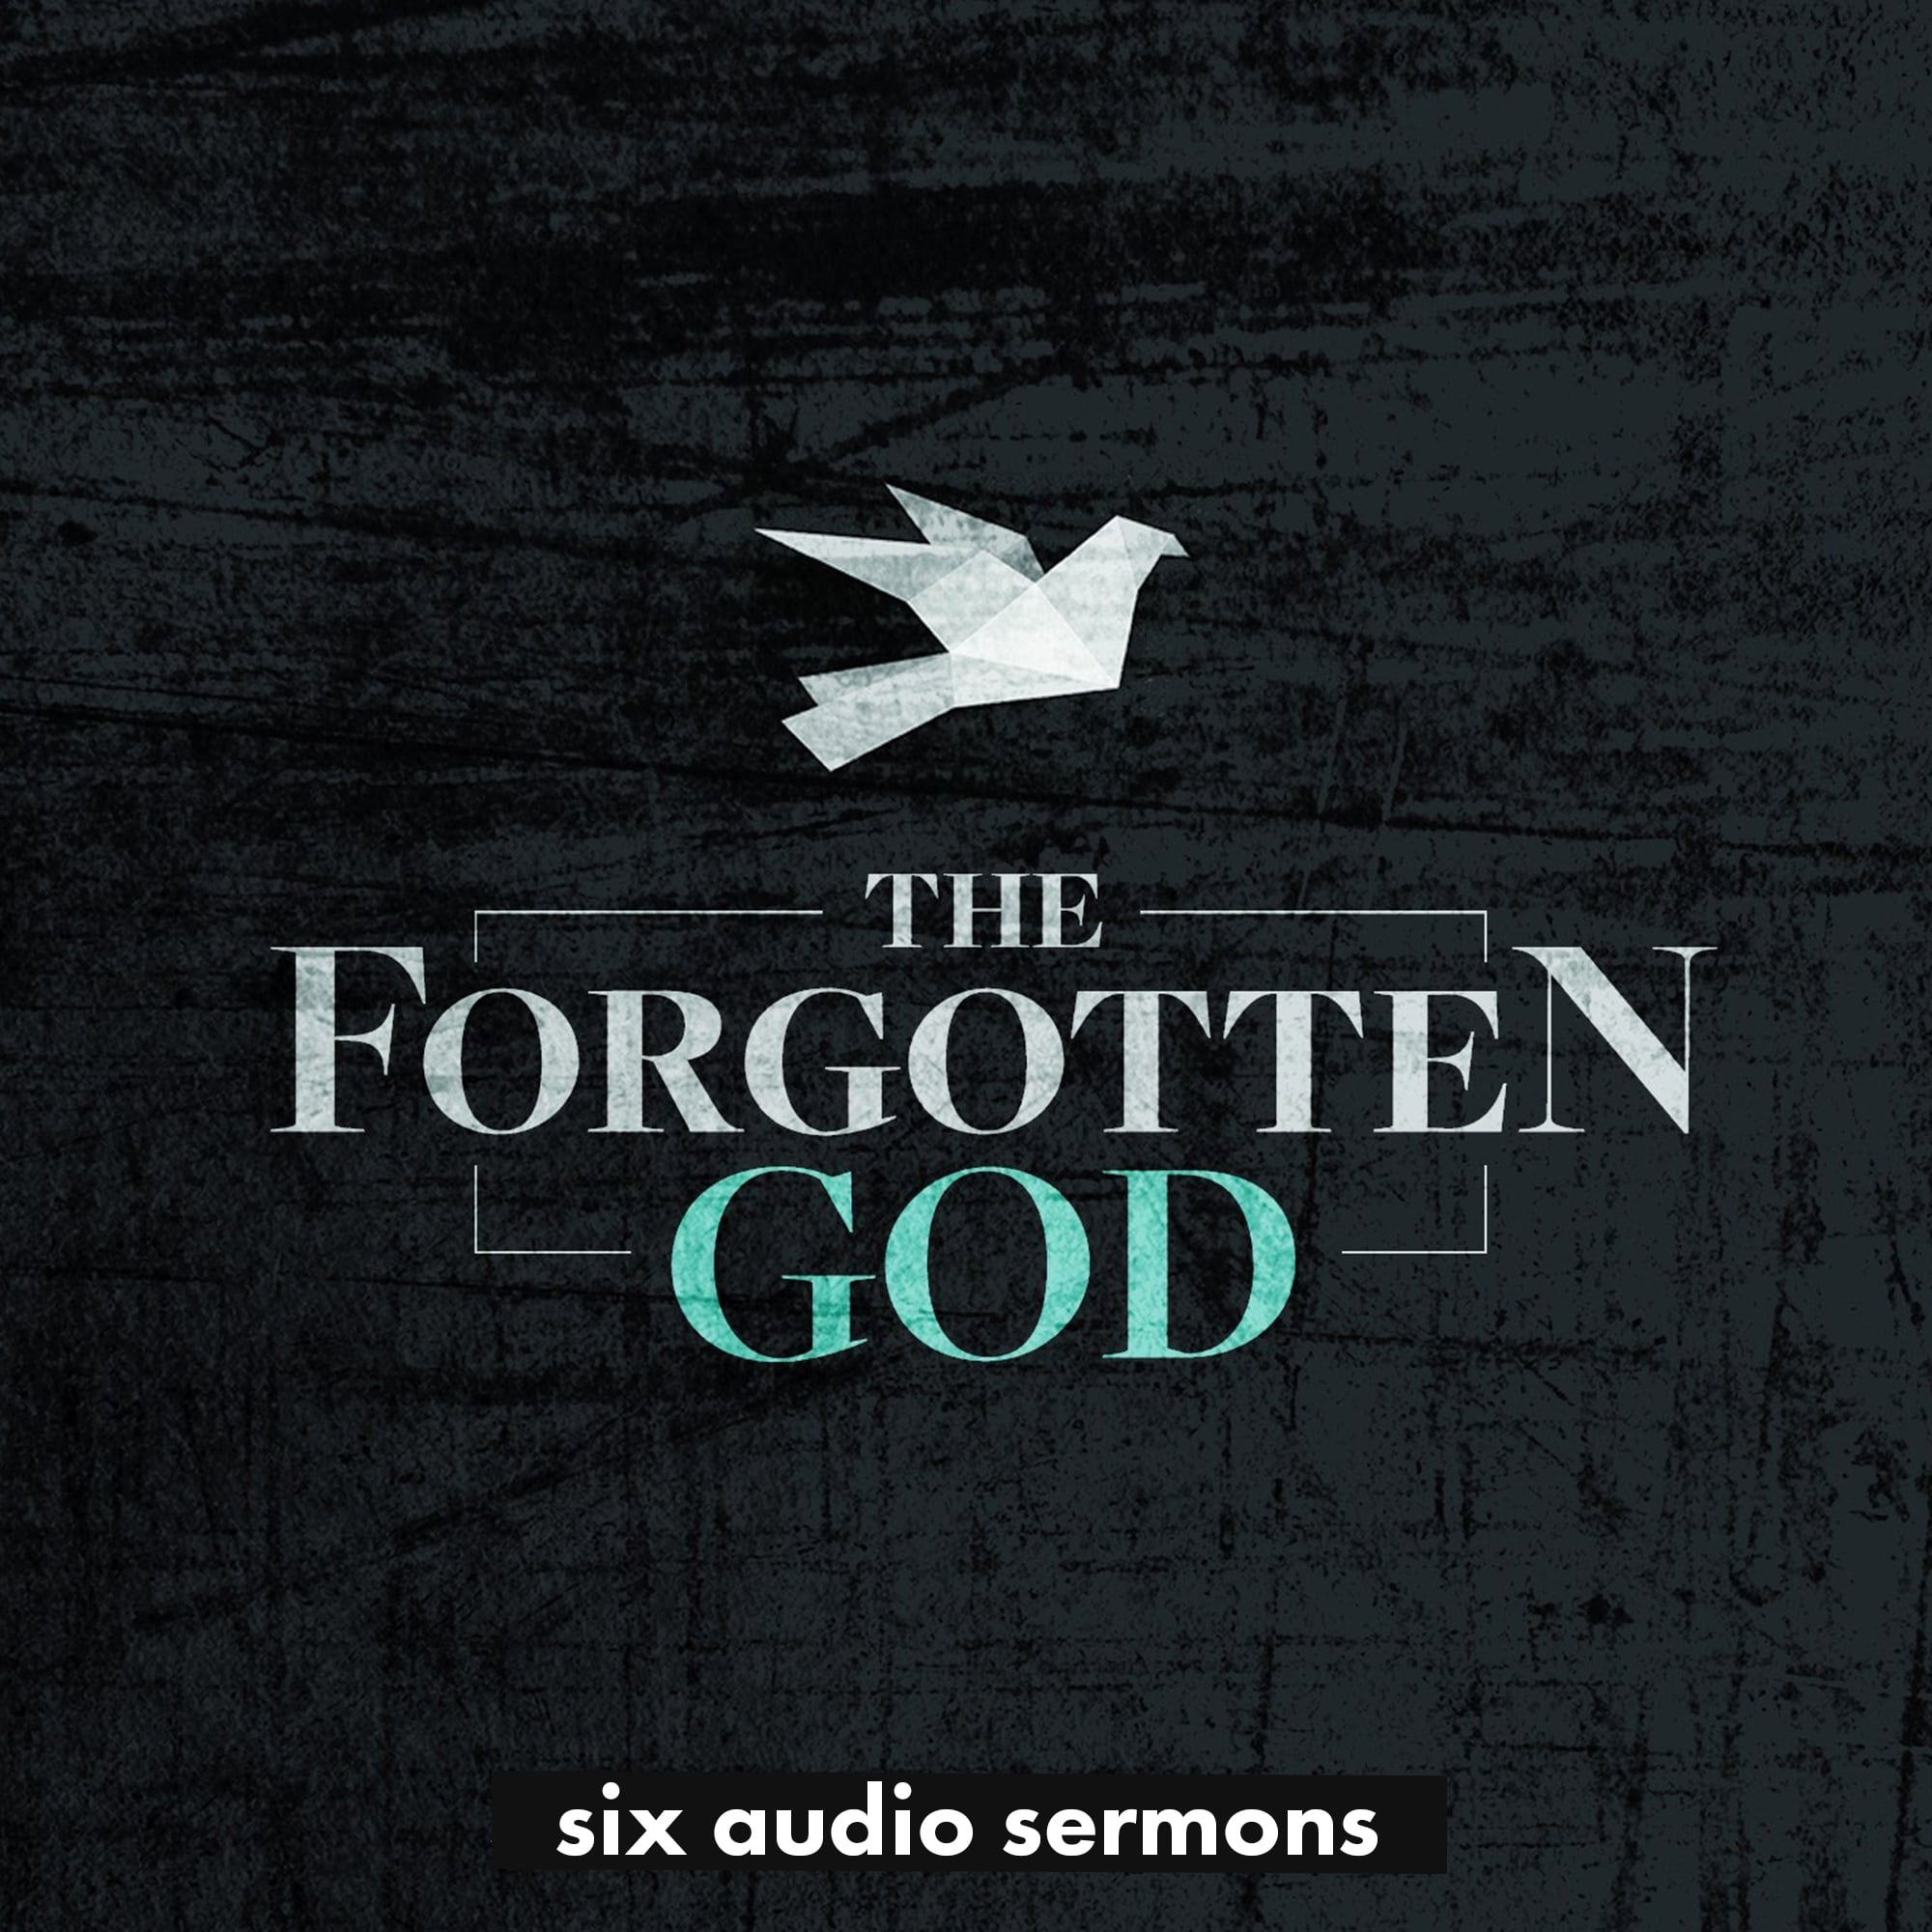 The Forgotten God (Audio Series)